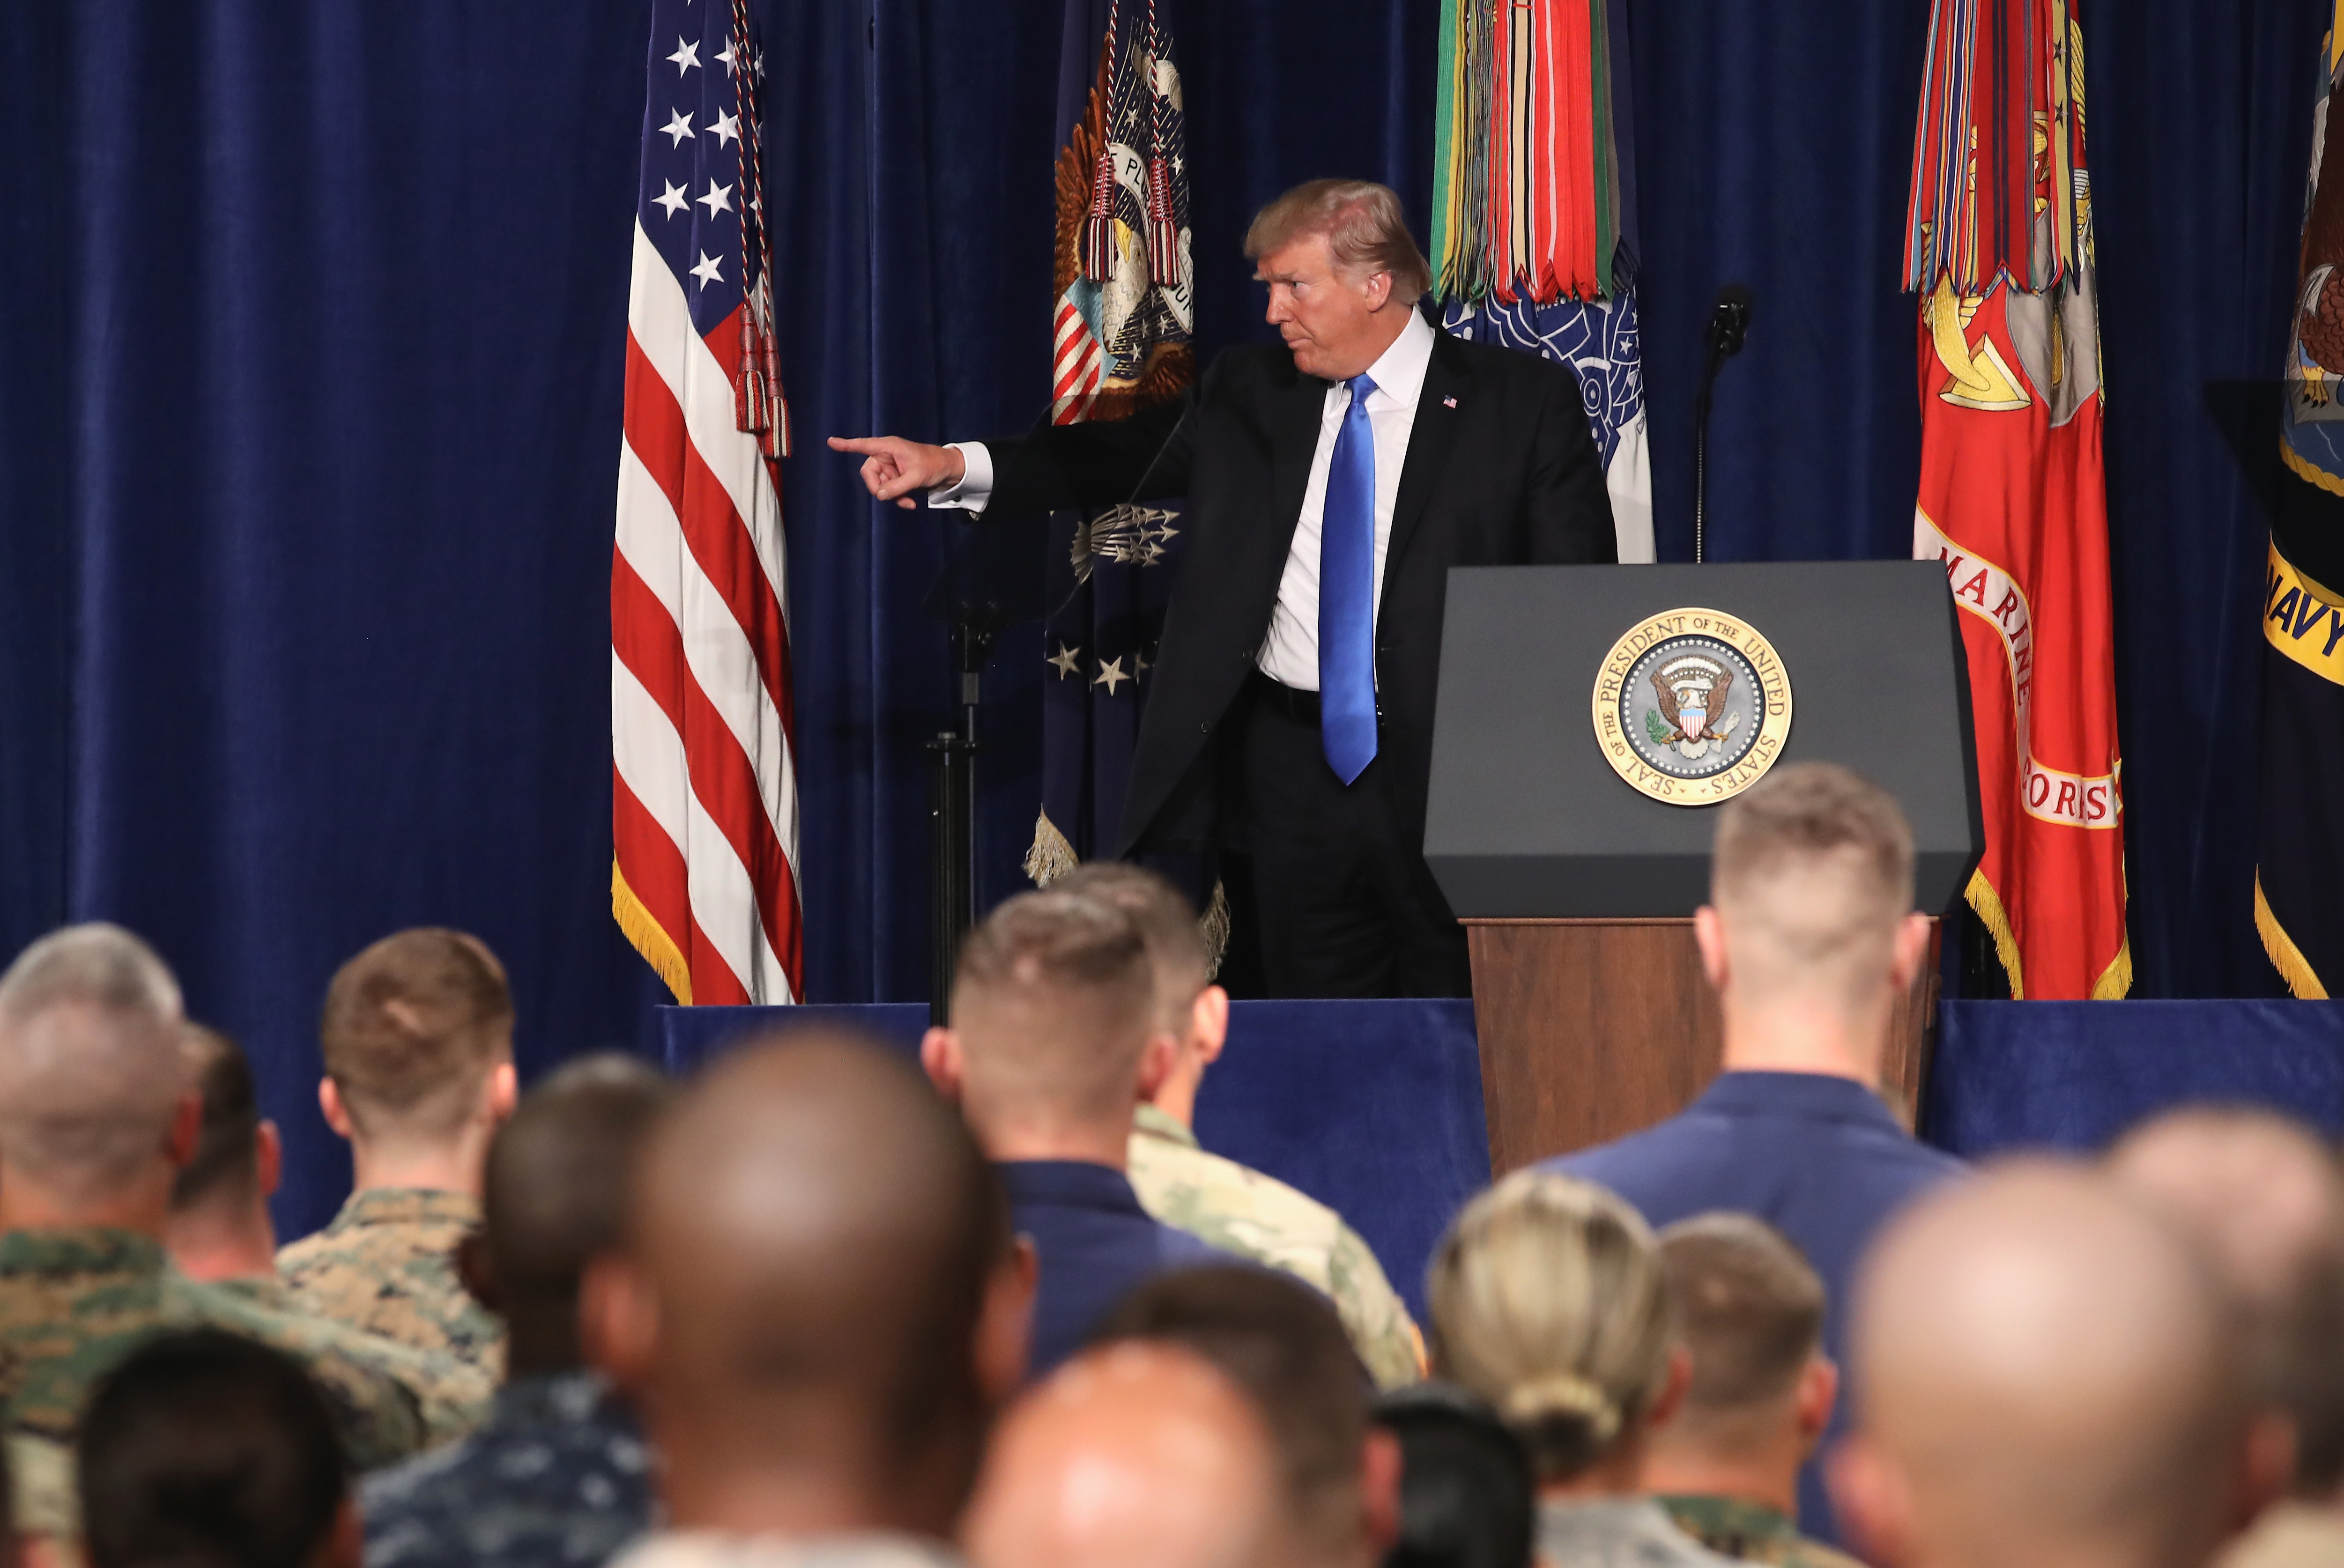 President Trump Addresses The Nation On Strategy In Afghanistan And South Asia From Fort Myer In Arlington